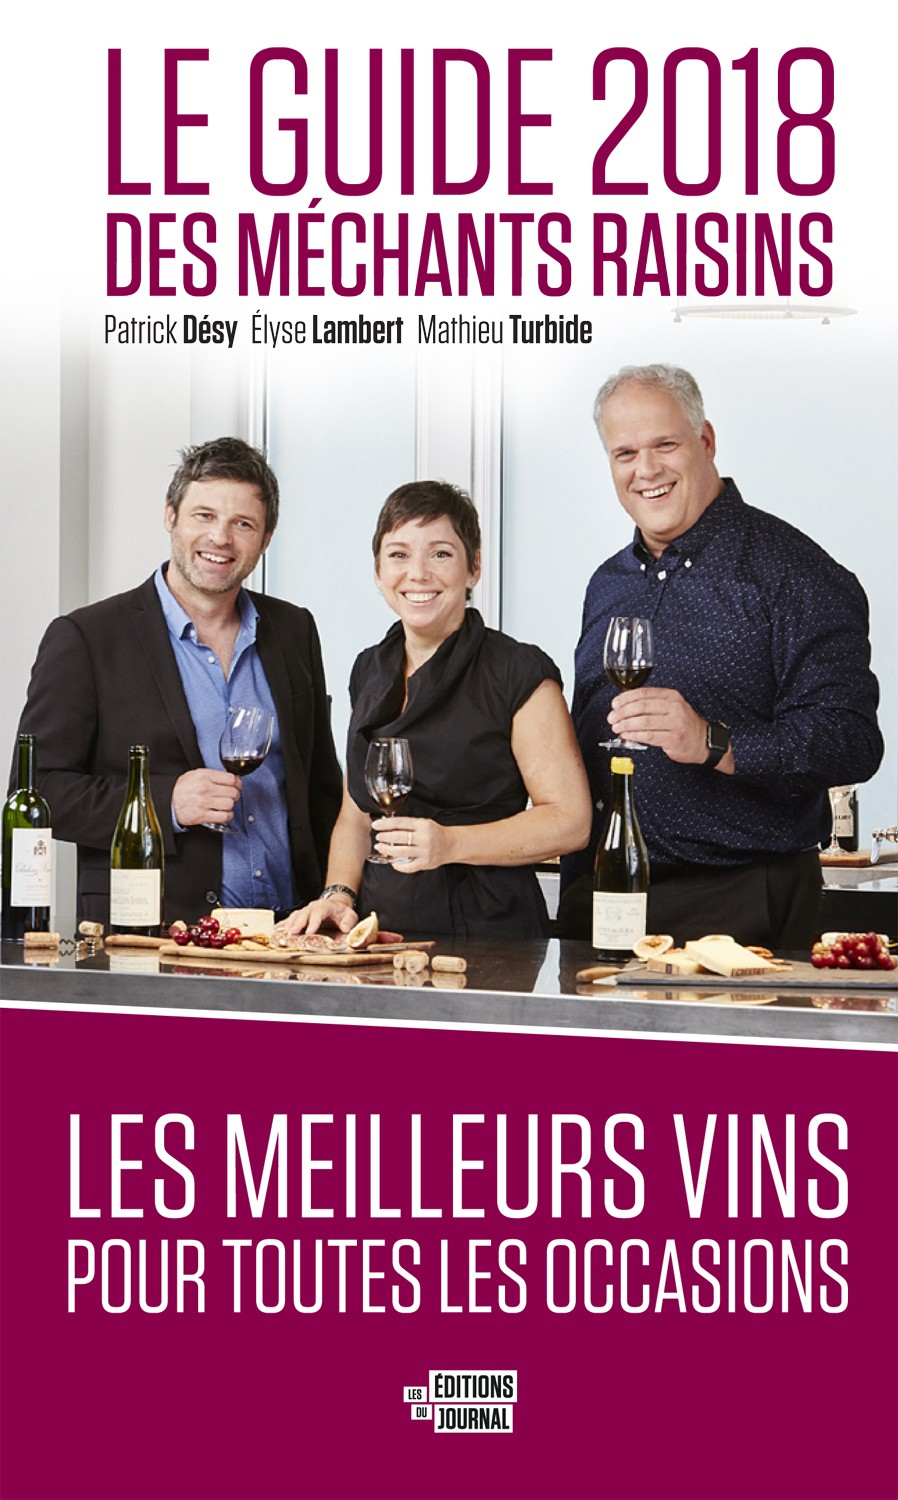 Le guide 2018 des Méchants Raisins